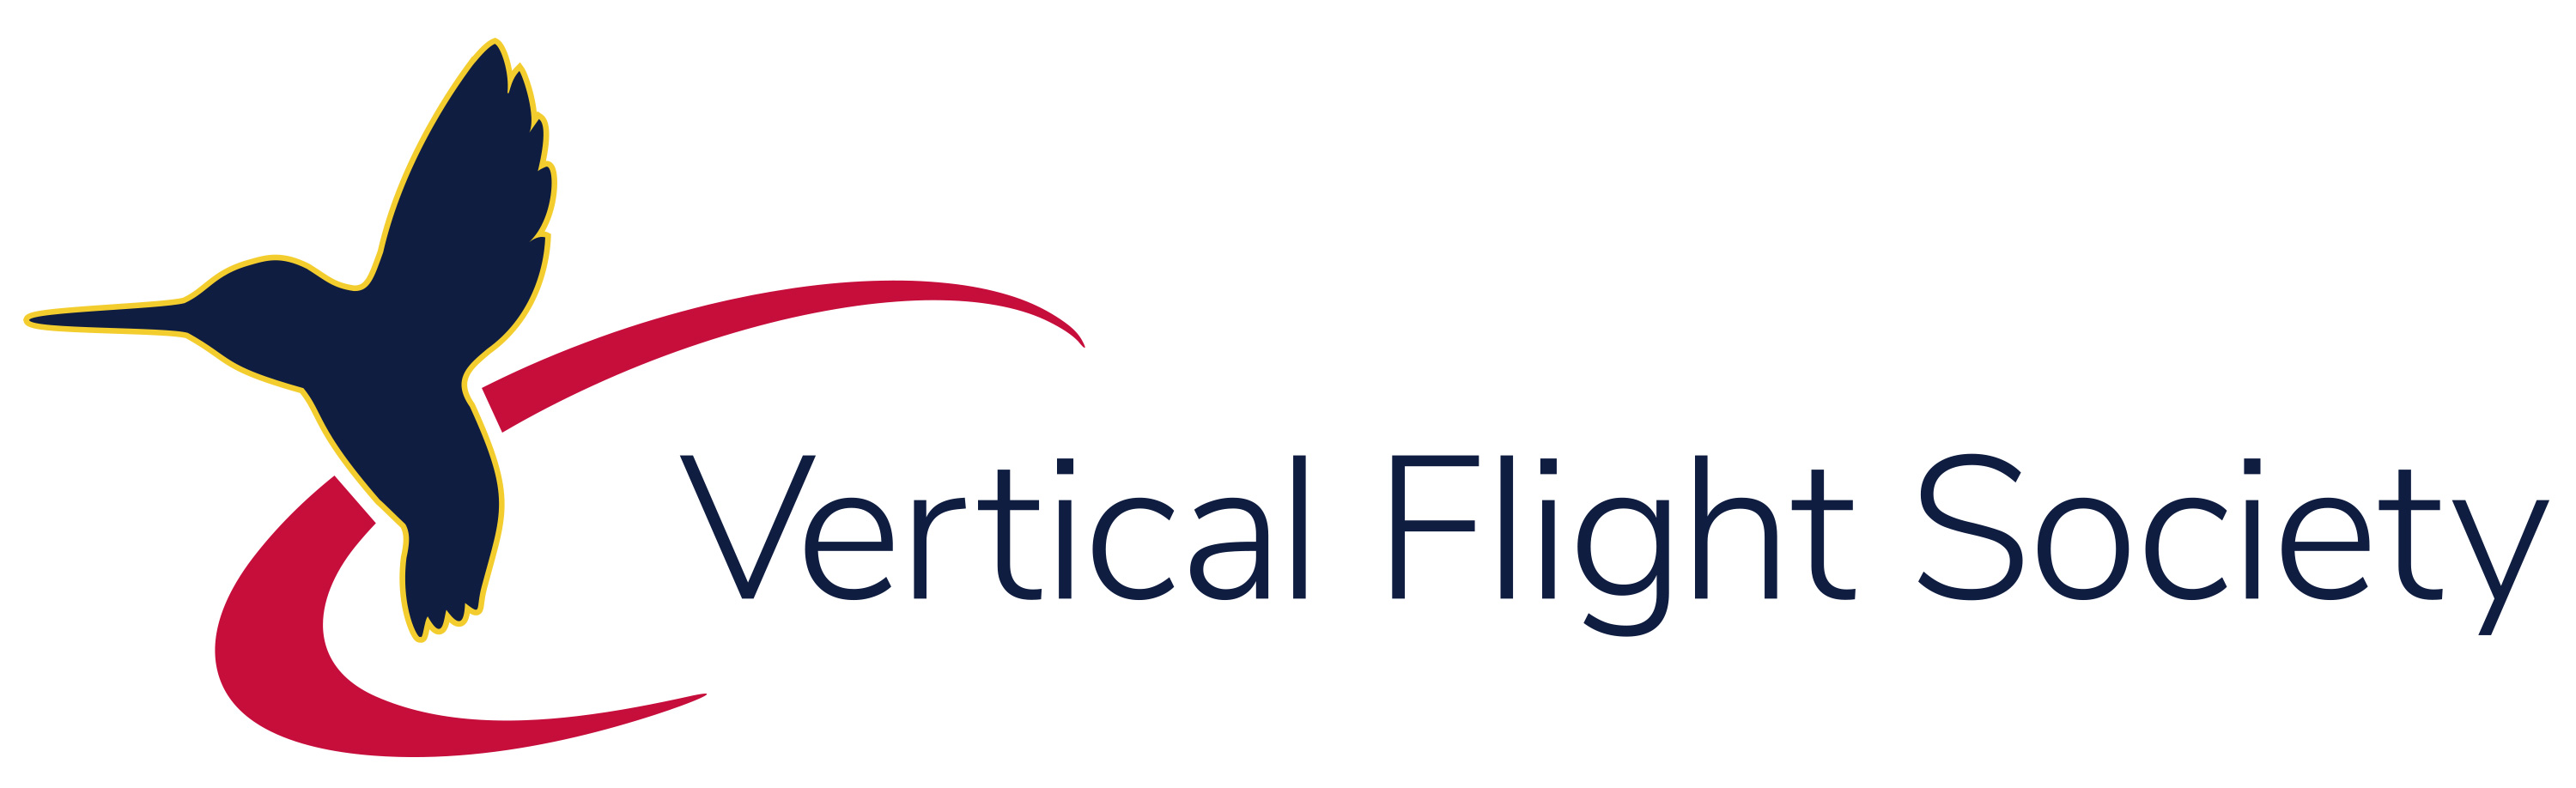 Vertical Flight Society logo (small stacked png)